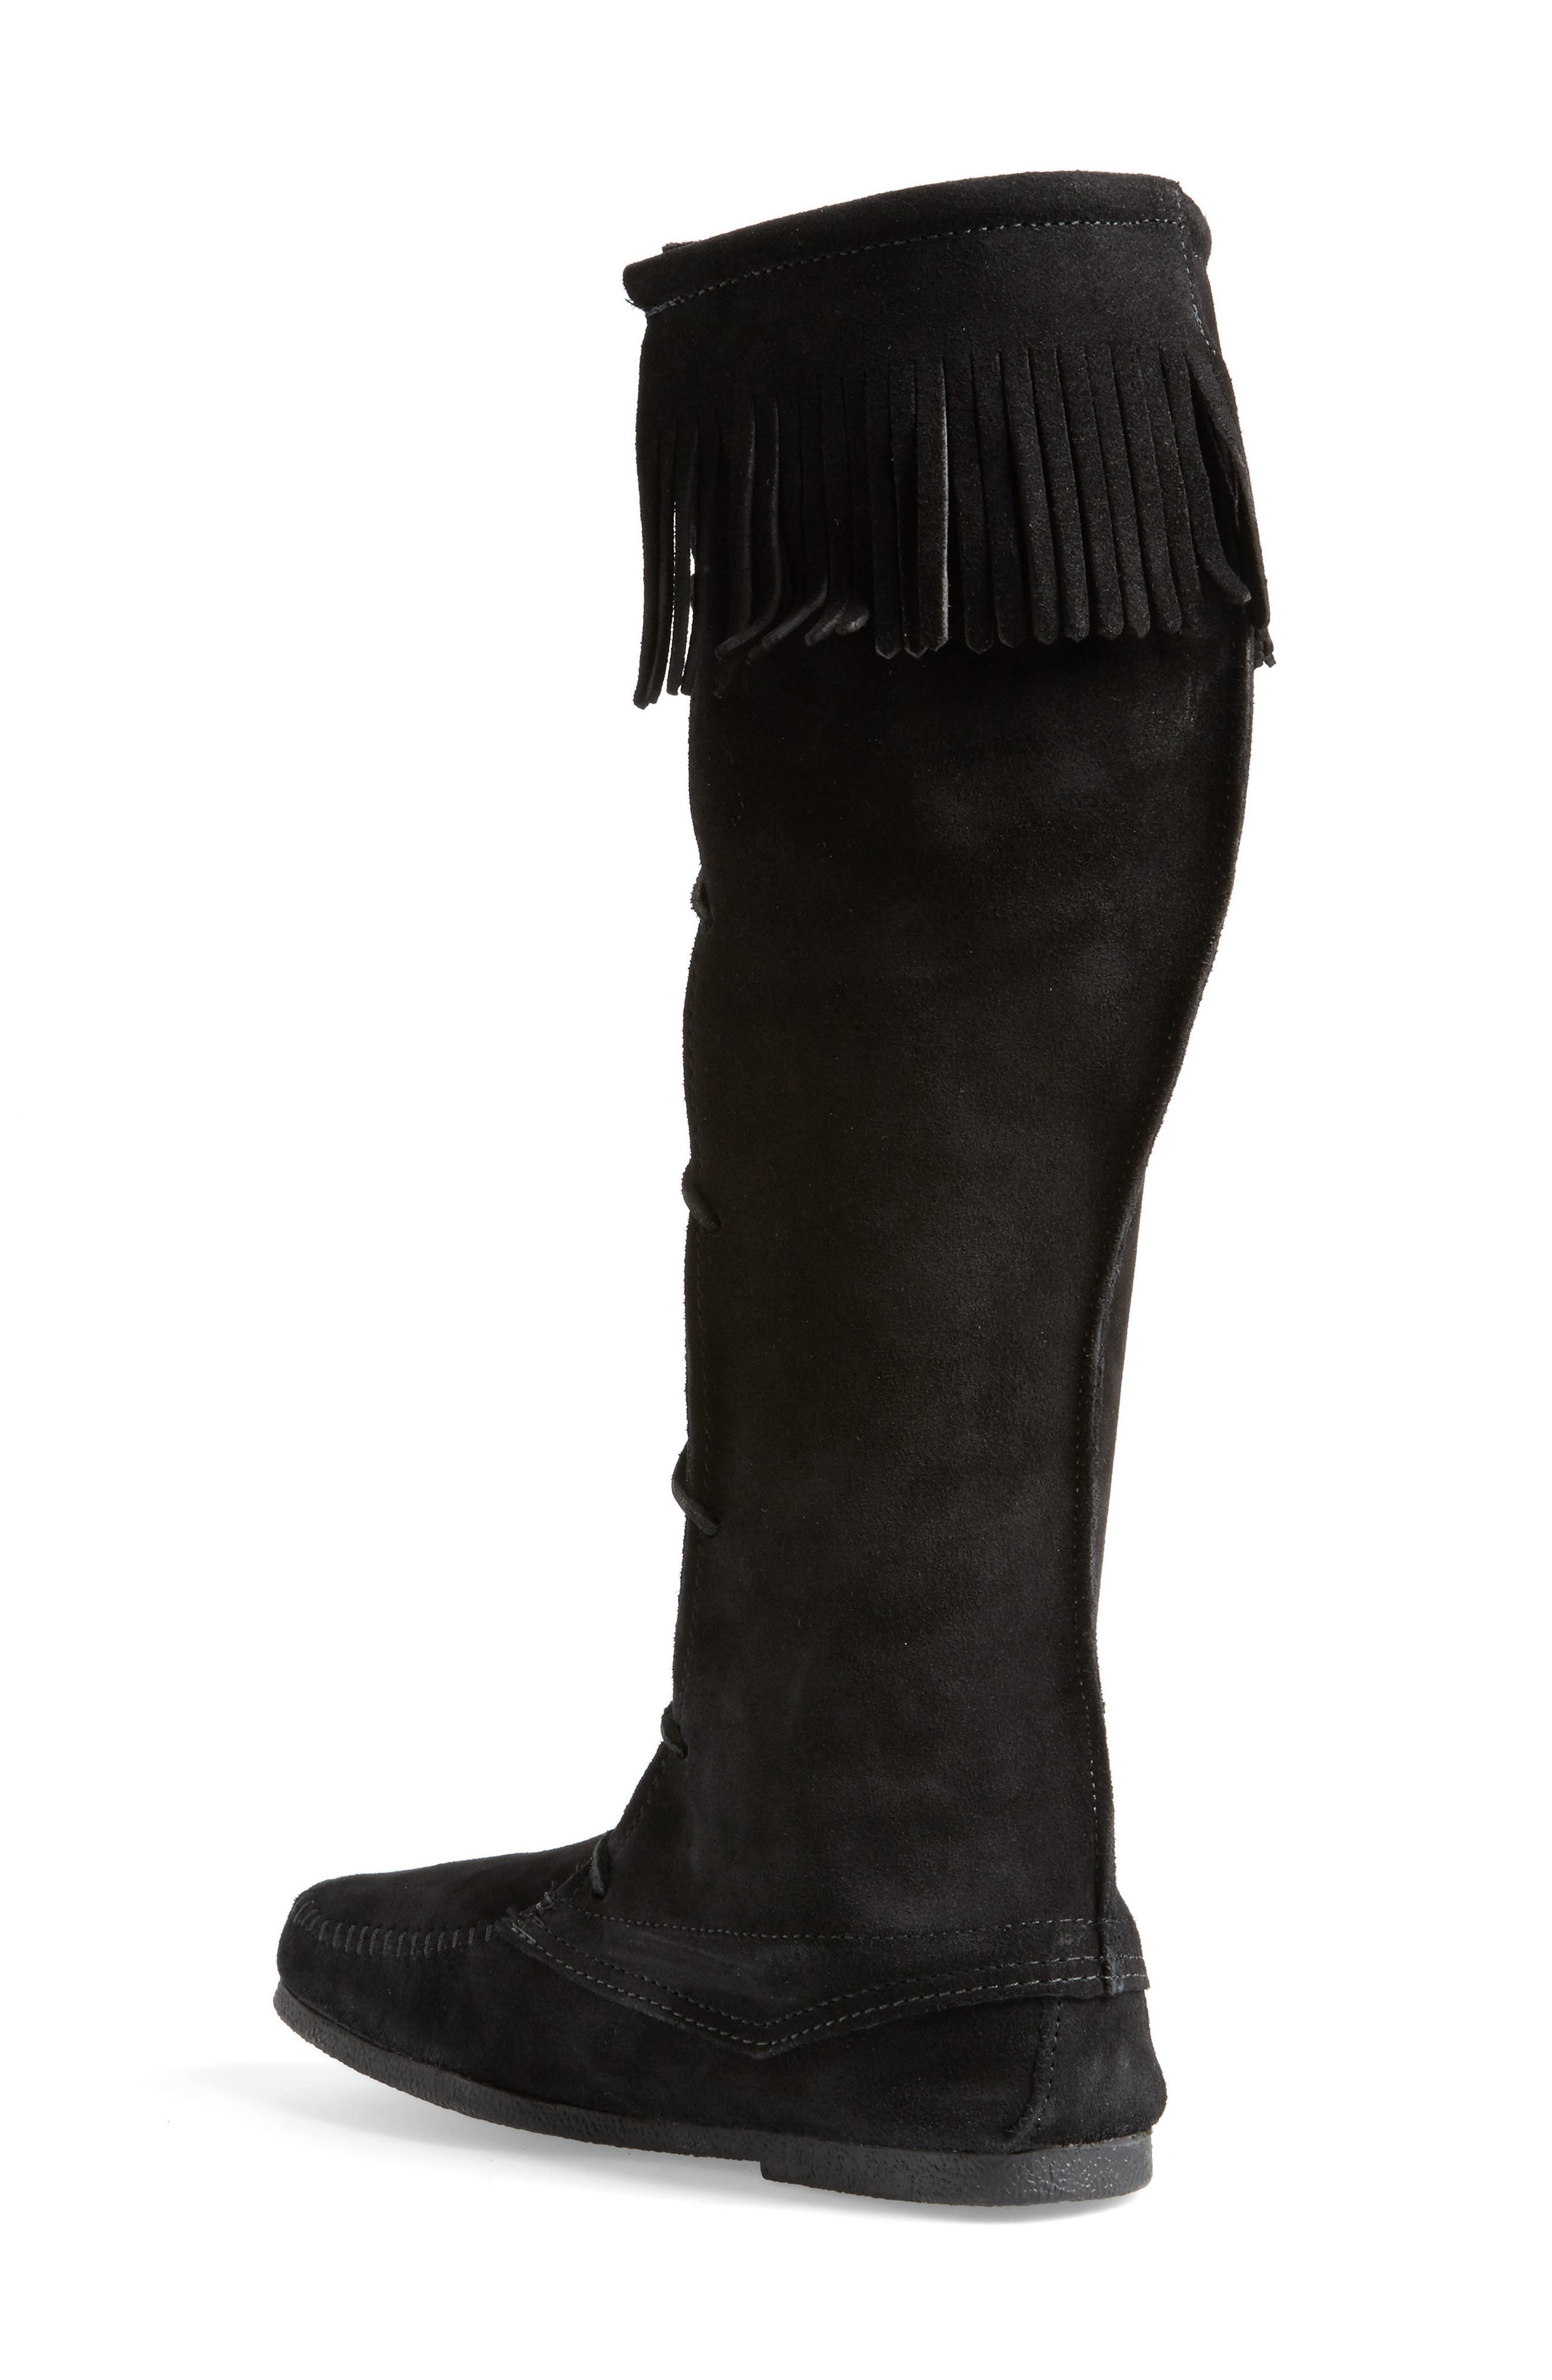 Knee High Moccasin Boot,                             Alternate thumbnail 2, color,                             BLACK SUEDE